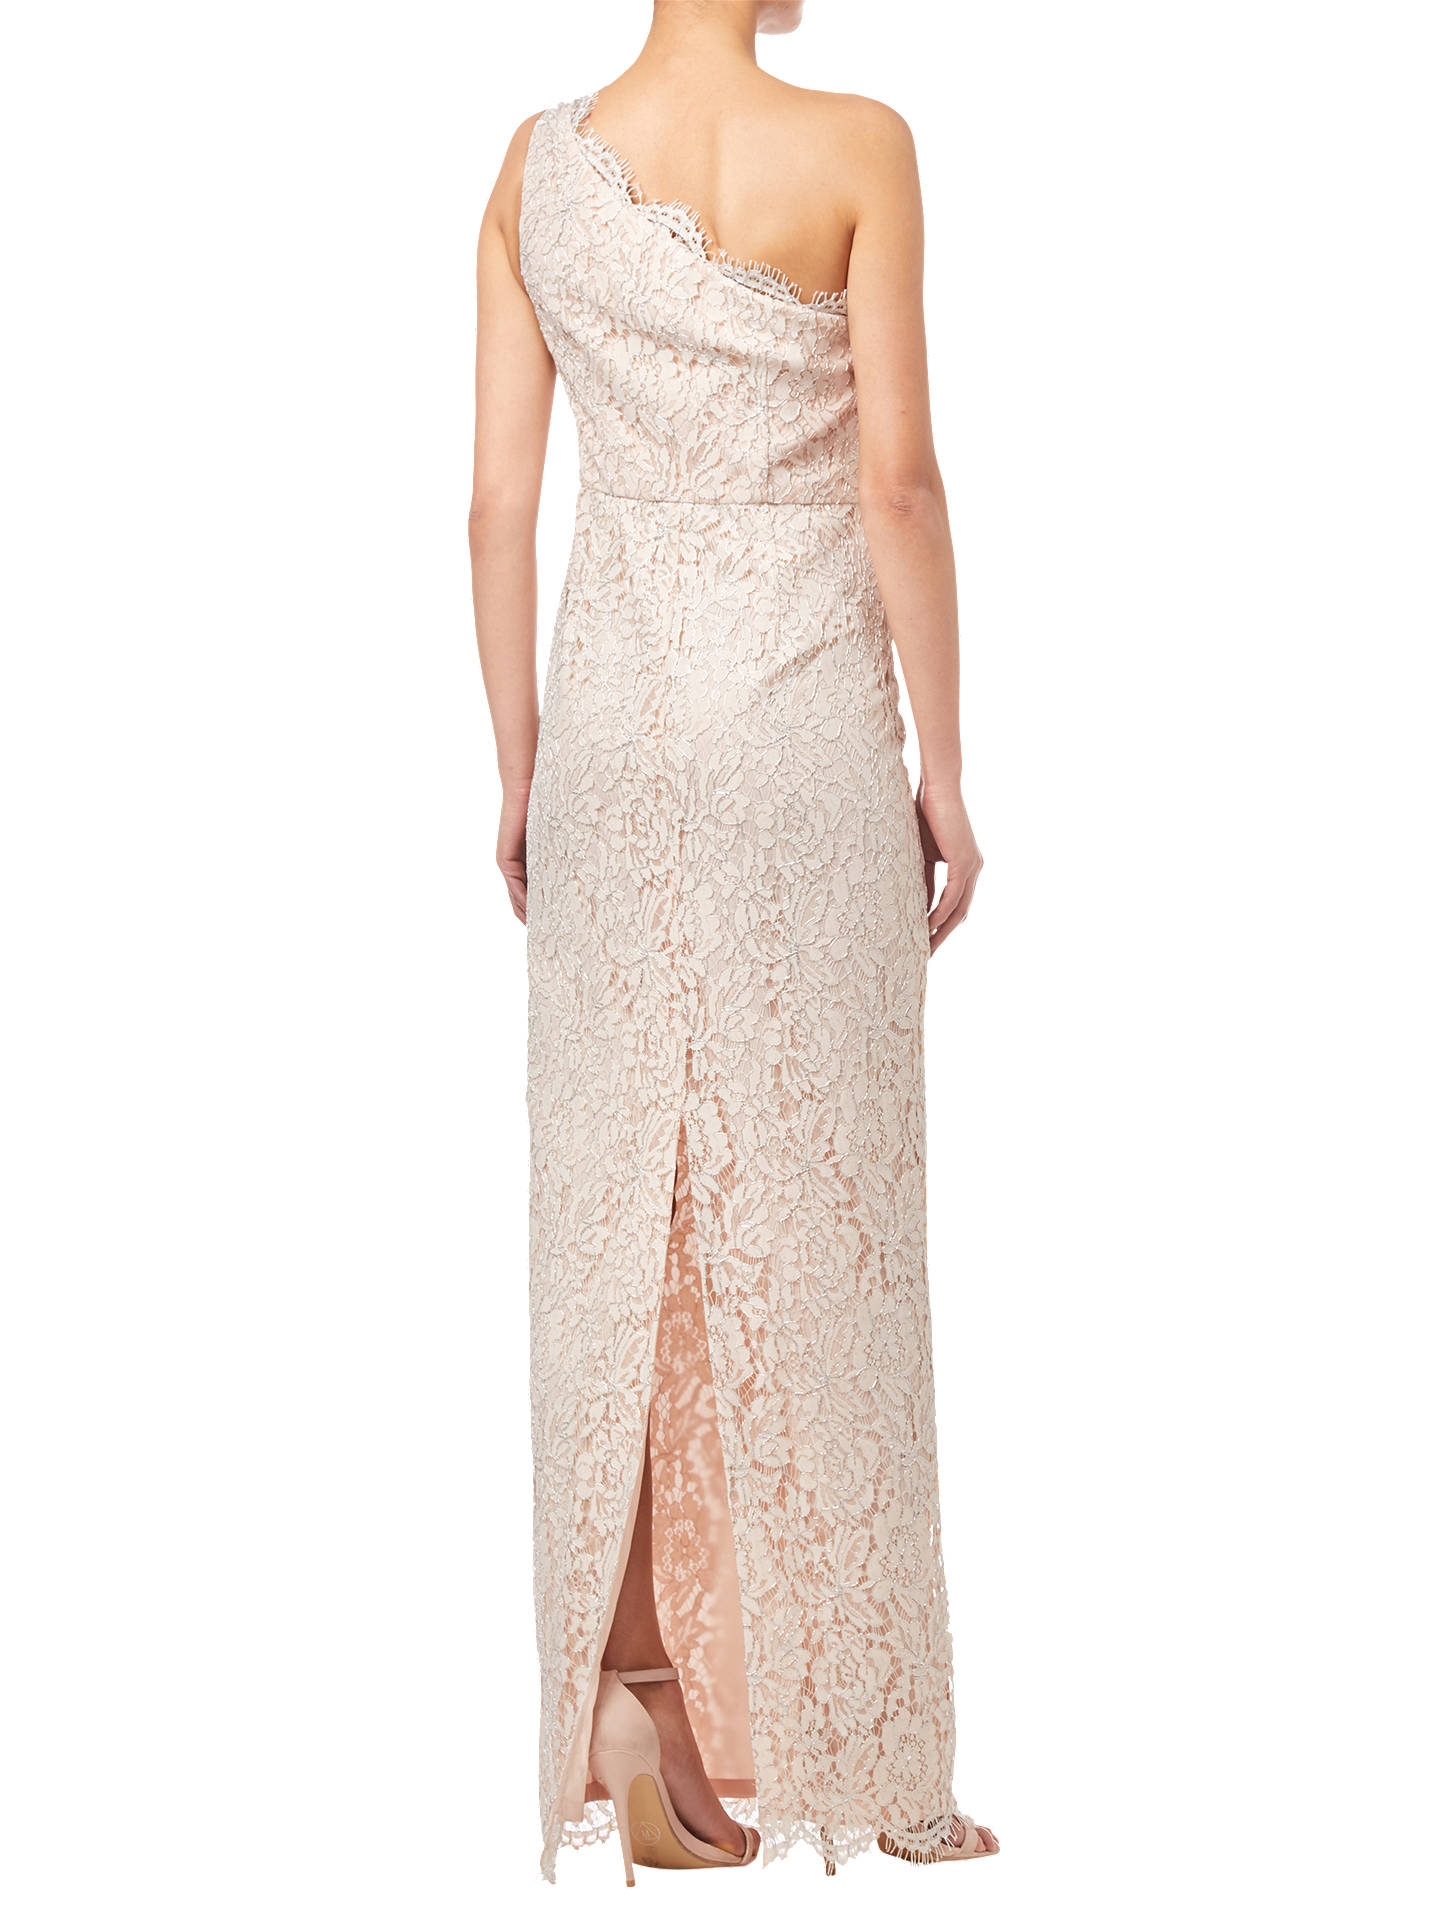 Buy Adrianna Papell One Shoulder Lace Column Dress, Blush, 8 Online at johnlewis.com